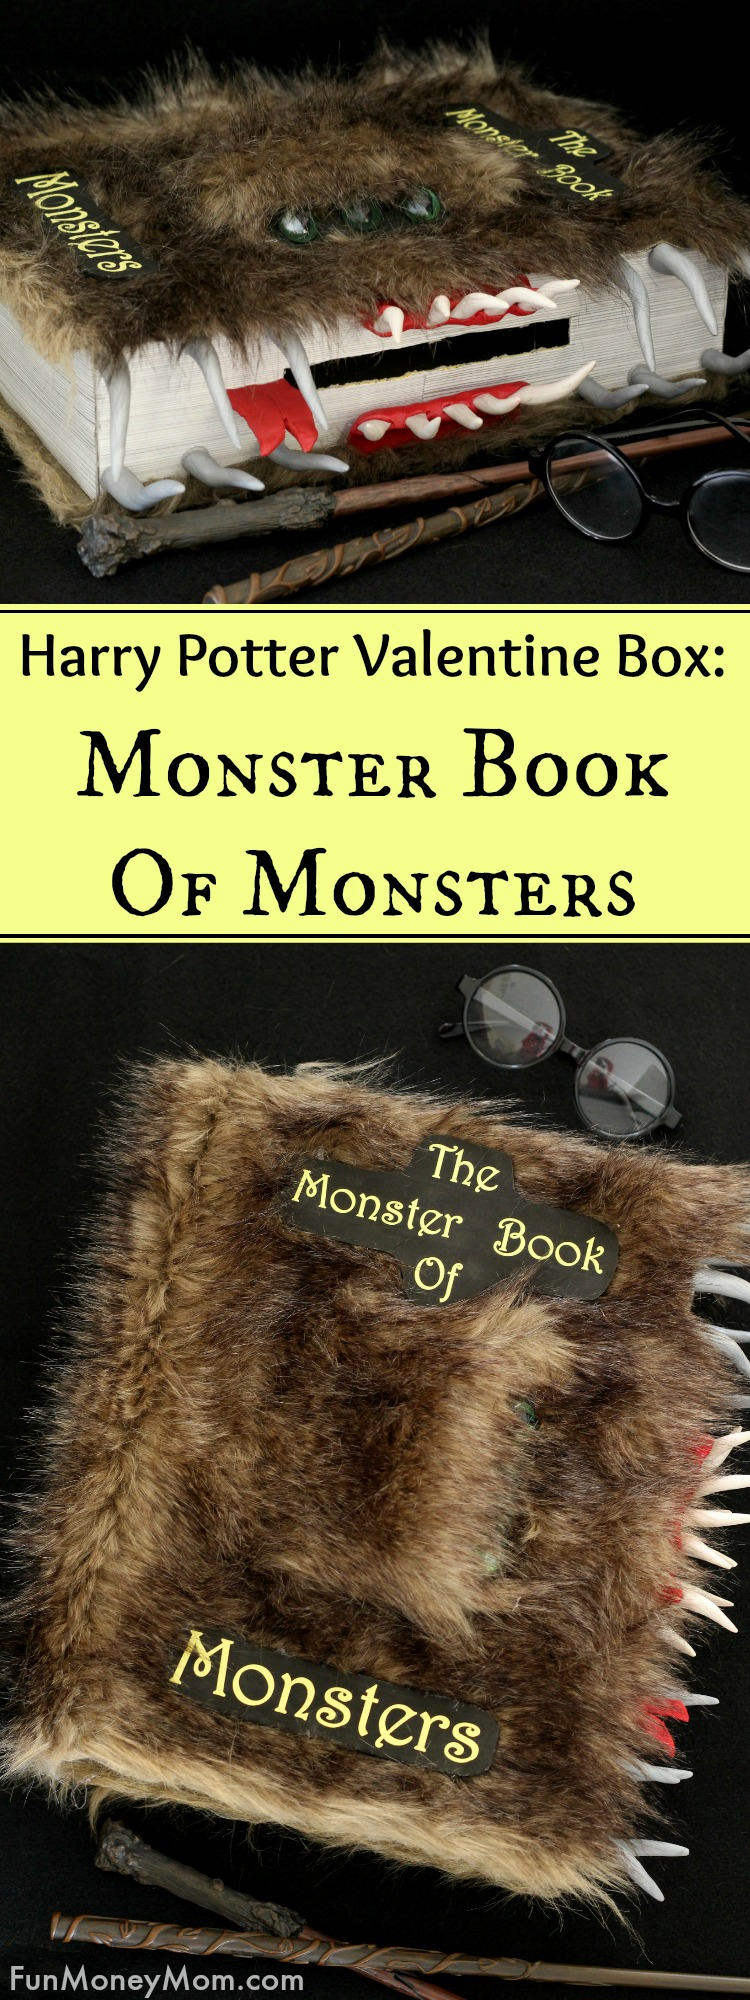 Harry Potter Valentine Box - This Monster Book Of Monsters Valentine Box is the perfect Valentine's Day Box for little Harry Potter fans. #harrypotter #harrypottervalentine #harrypottervalentinebox #monsterbookofmonsters #monsterbookofmonstersbox #monsterbookofmonstersvalentine #valentinebox #valentinesday